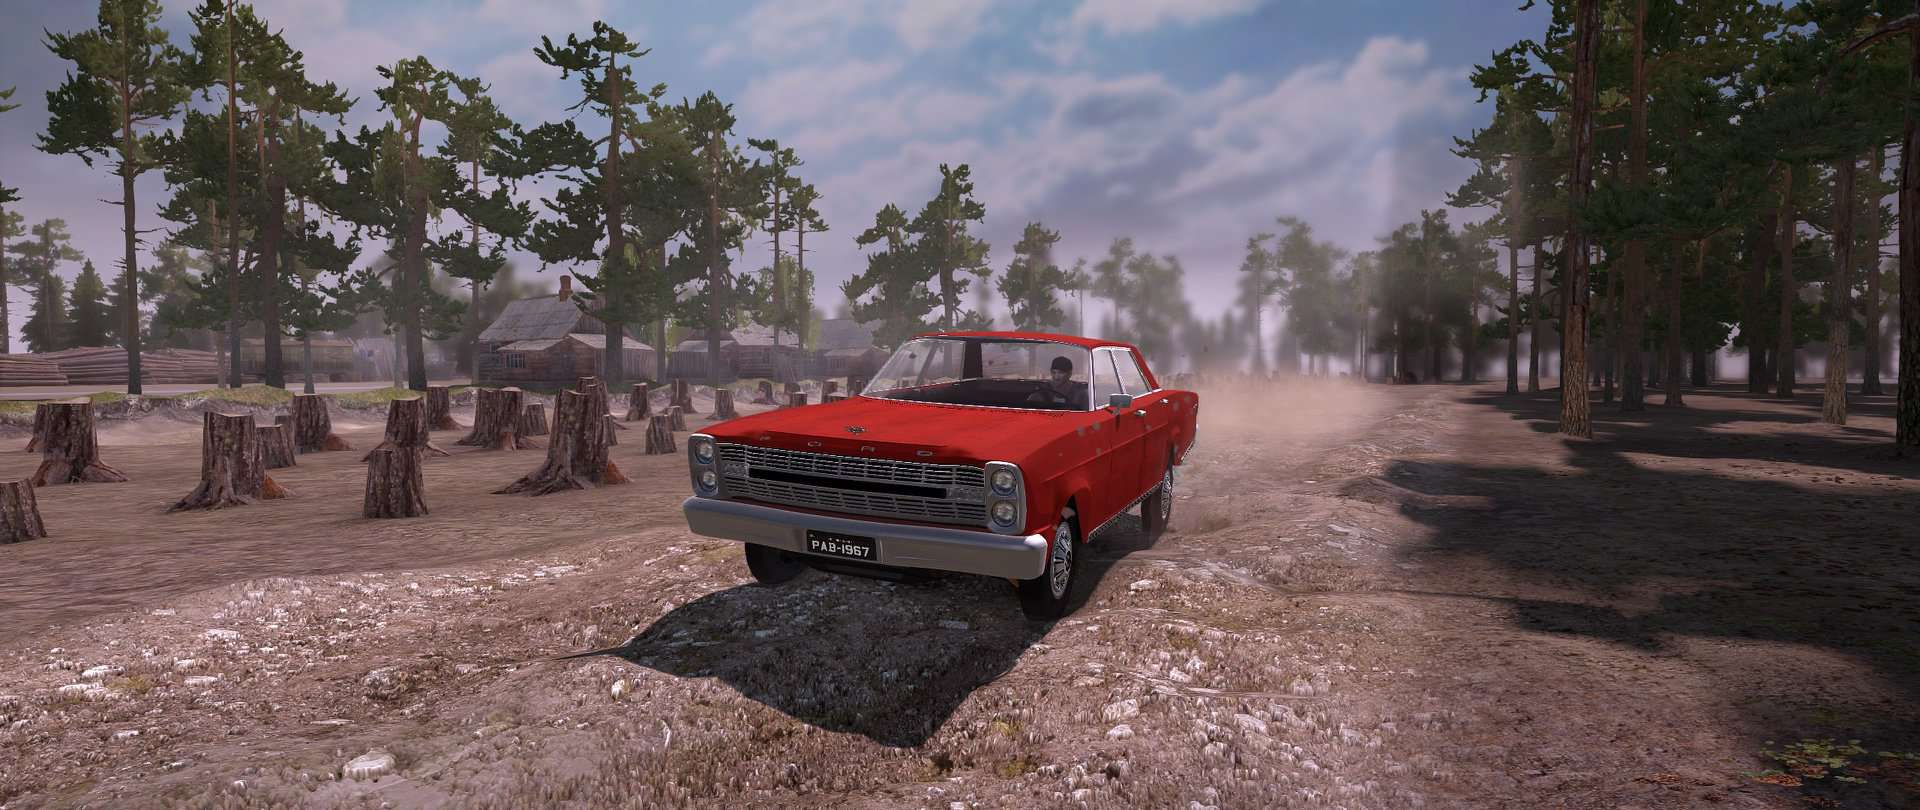 Spintires:Mudrunner - Ford Galaxy 500 1967 Mod